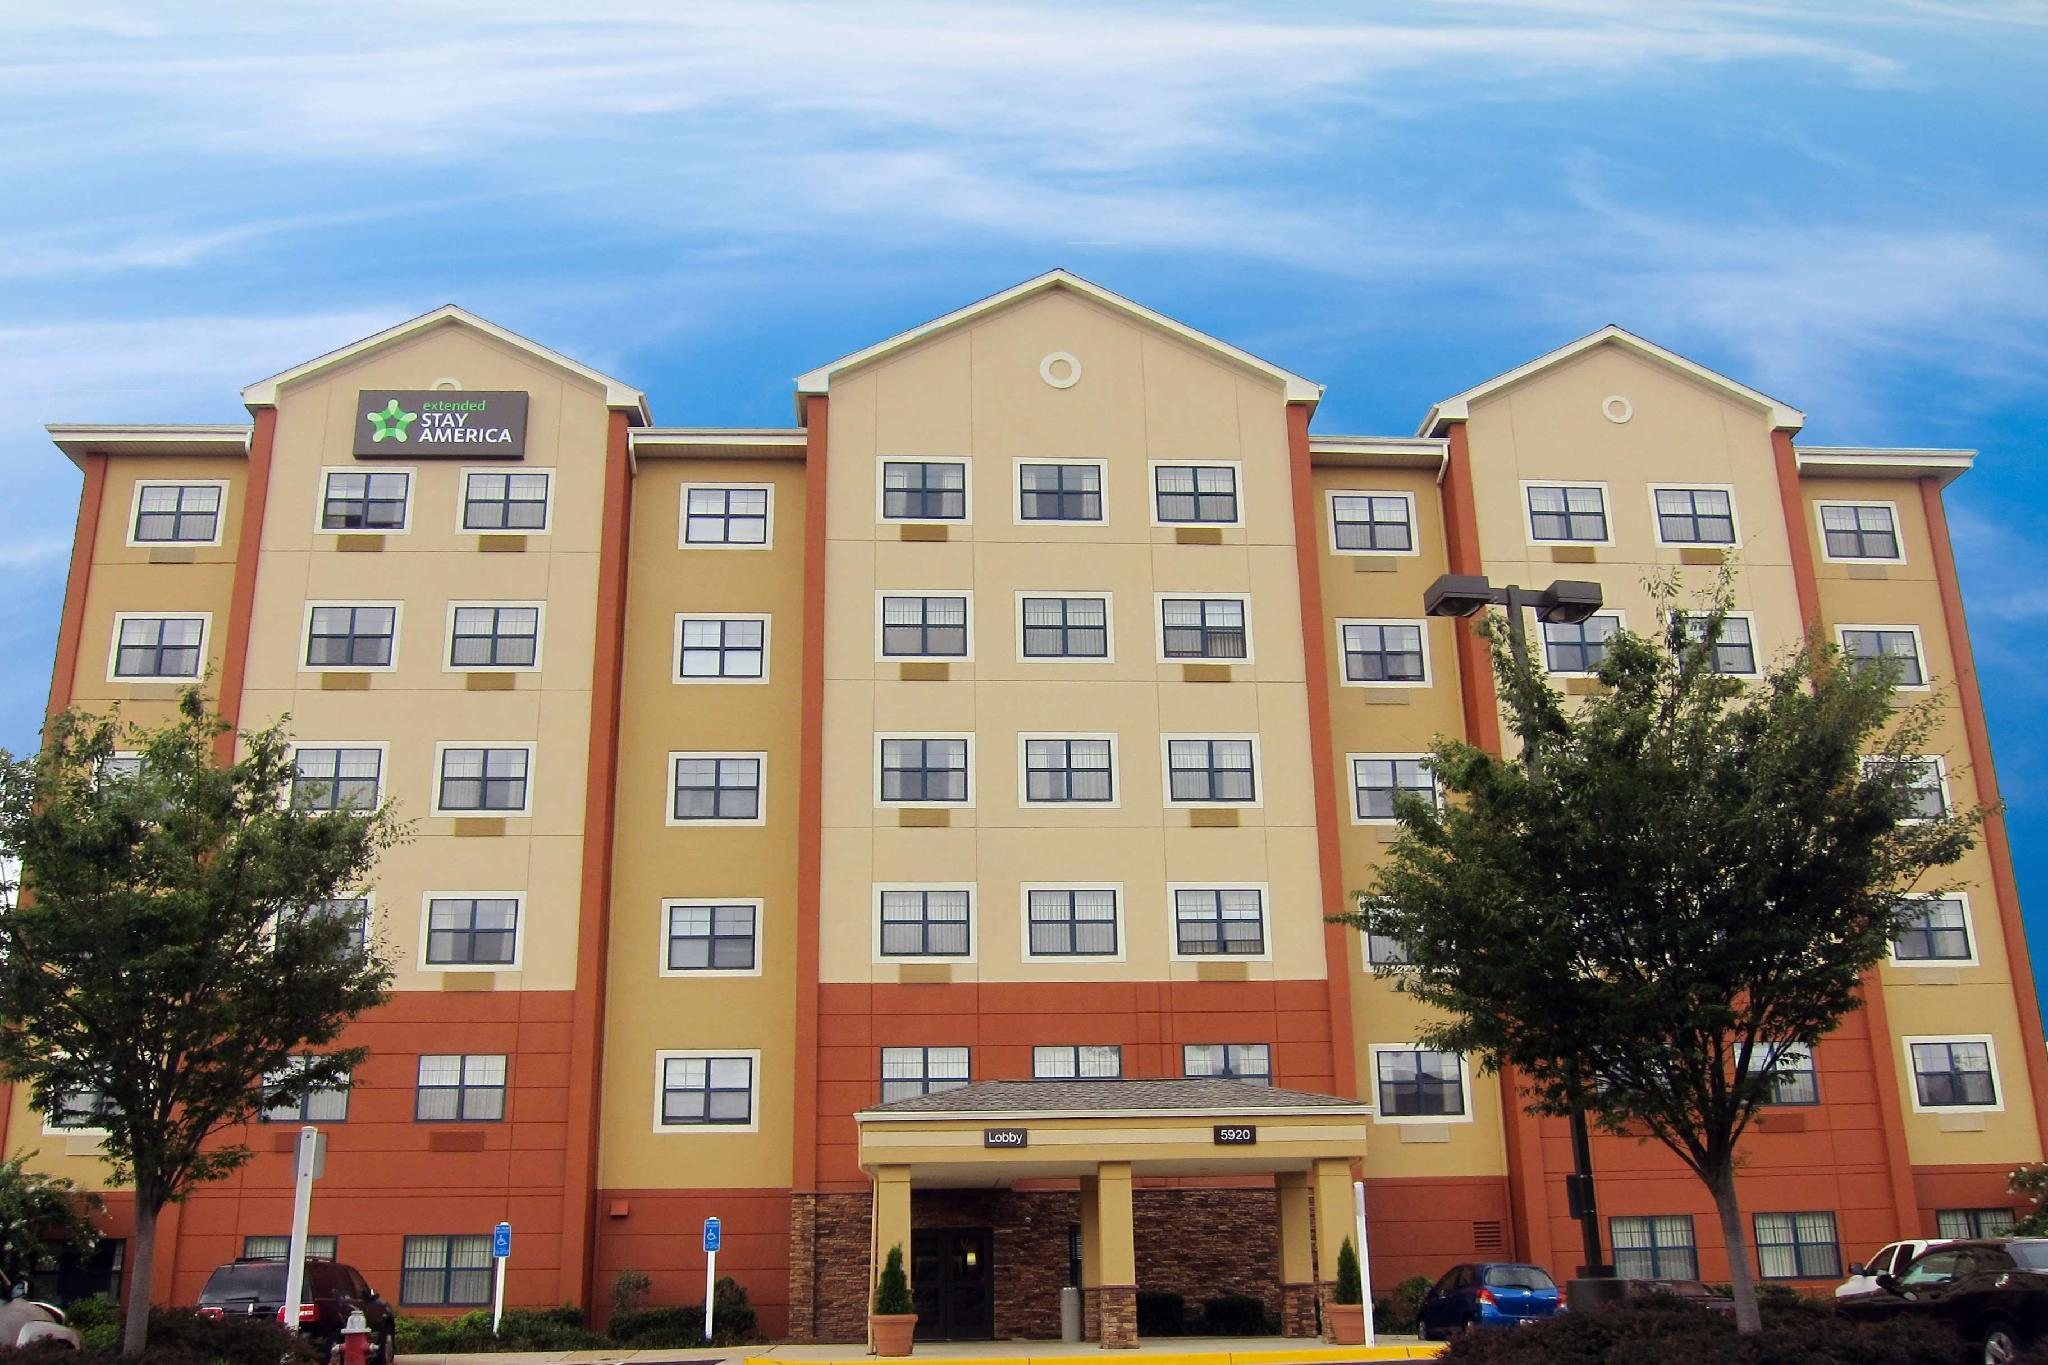 Extended Stay America   Washington D.C.   Centreville   Manassas